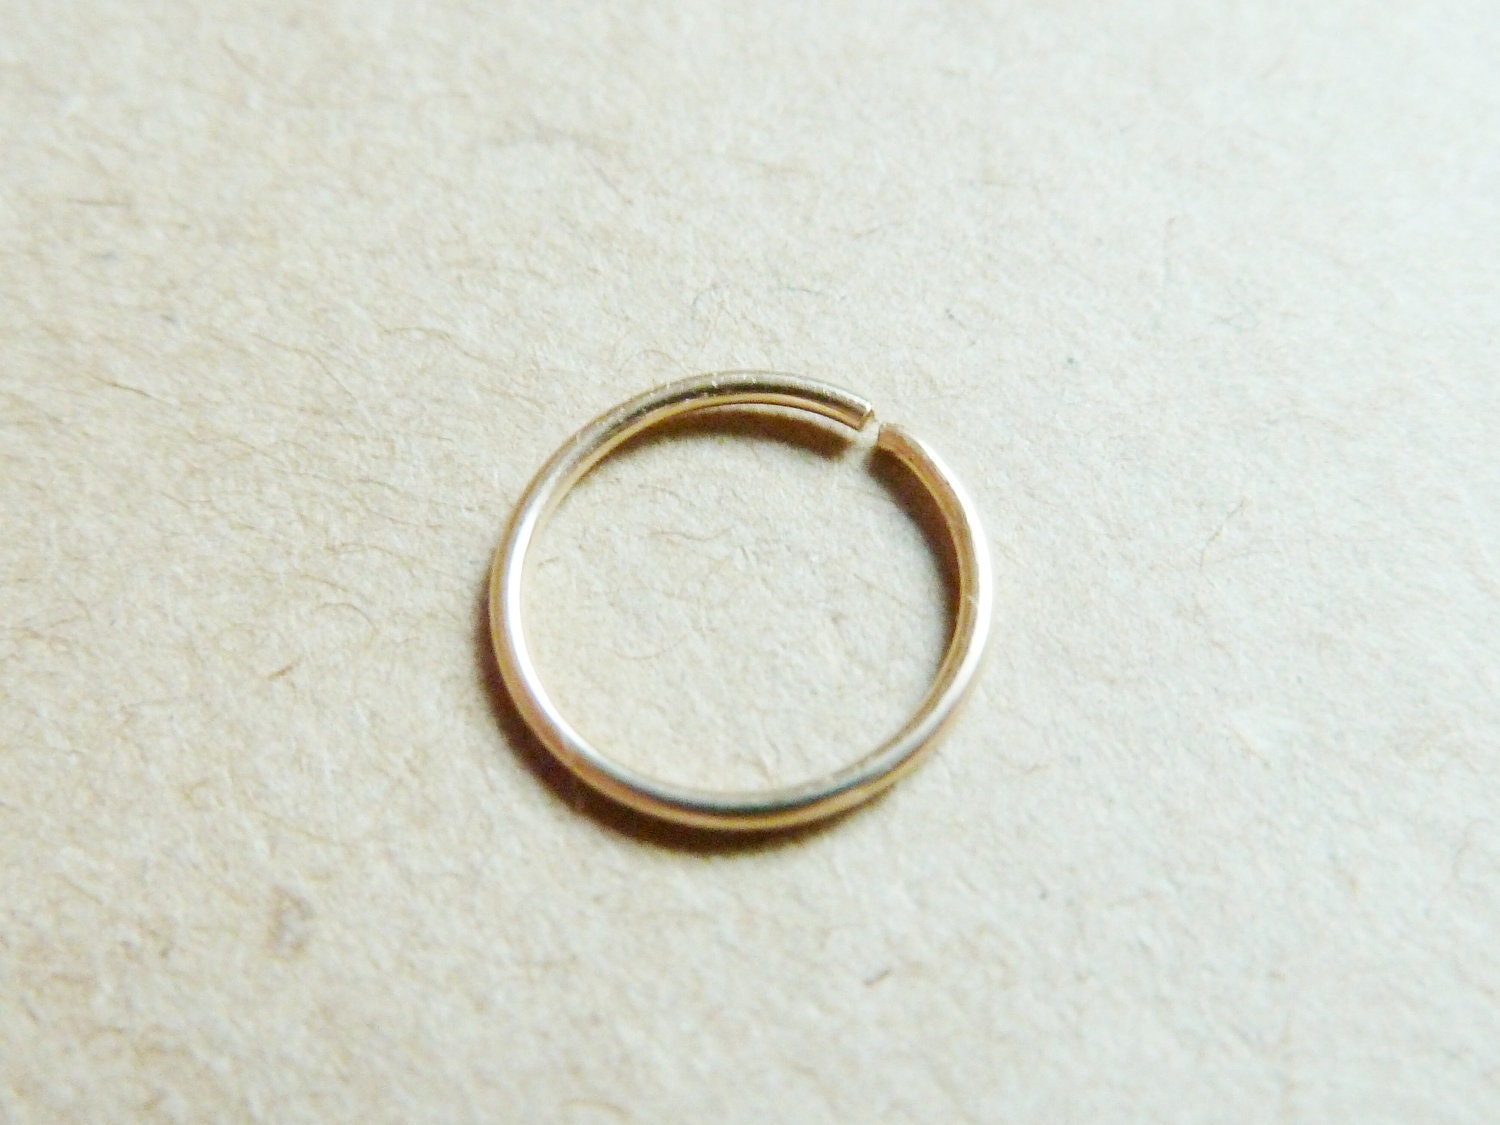 nose ring 14k gold filled cartilage piercing tiny by